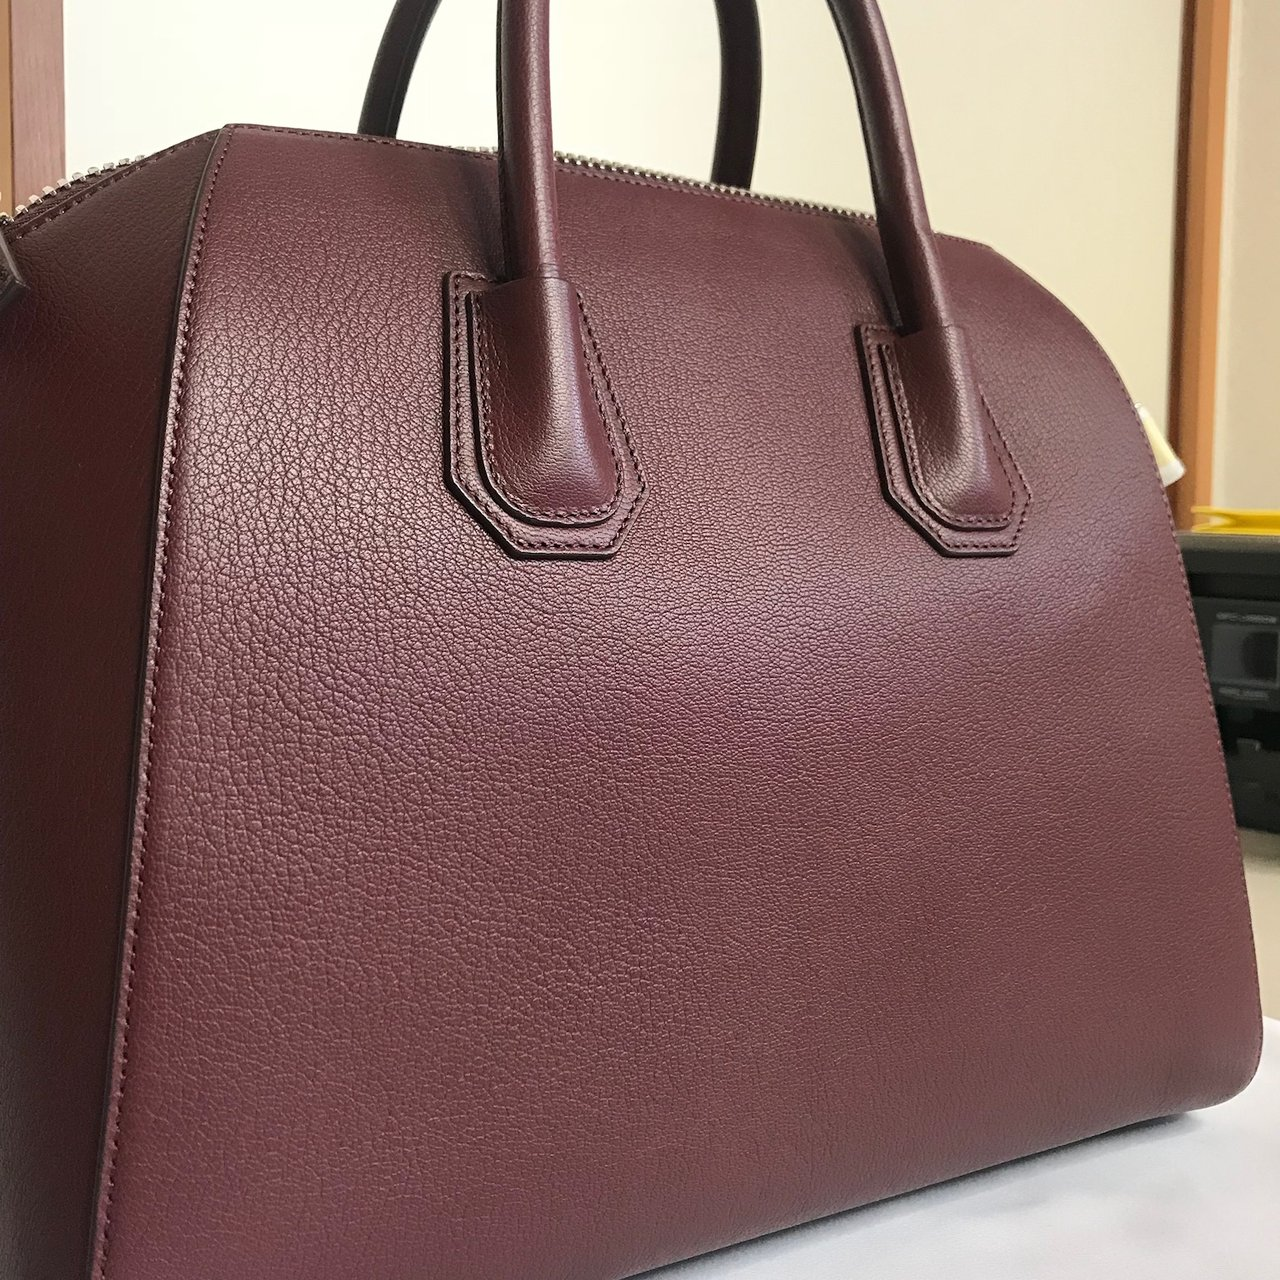 f7292eaf46 Givenchy Satchel in Oxblood ... Givenchy Small Antigona Oxblood Goatskin  Leather Red Top Italy Leather Bag New